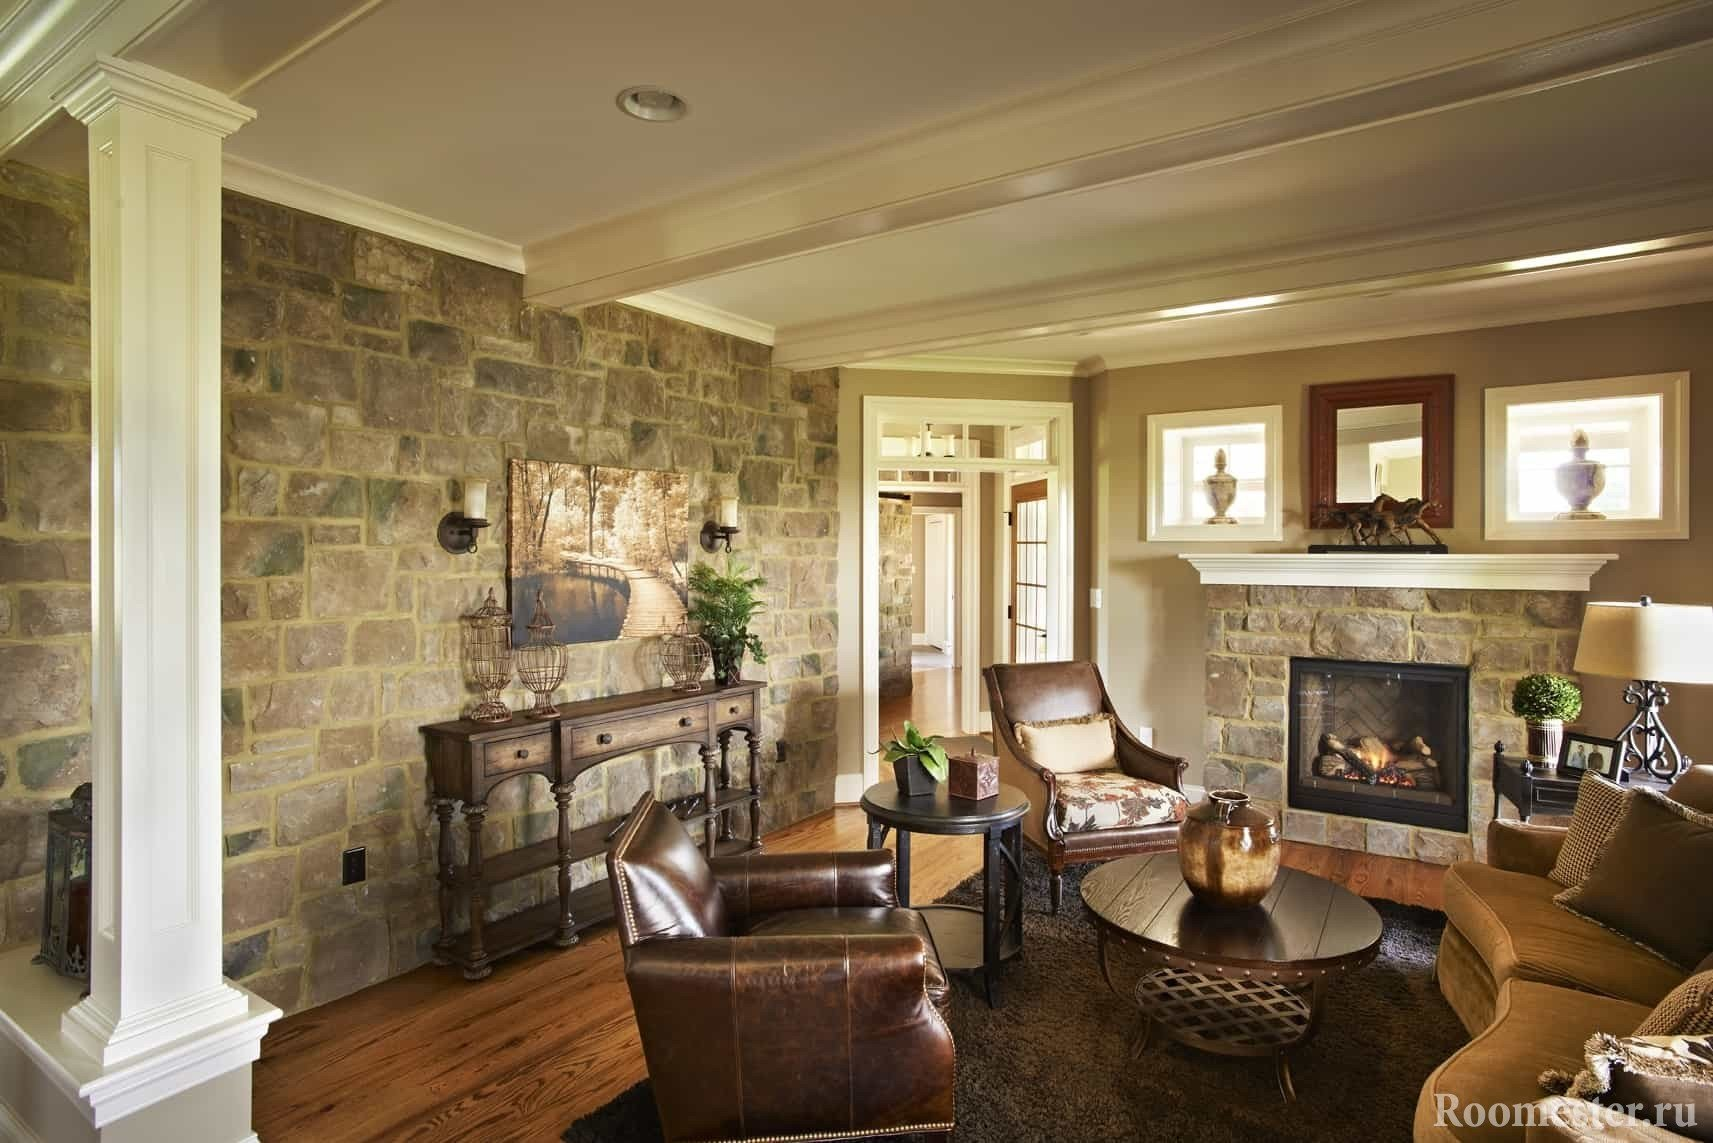 Wall decor in the living room under stone